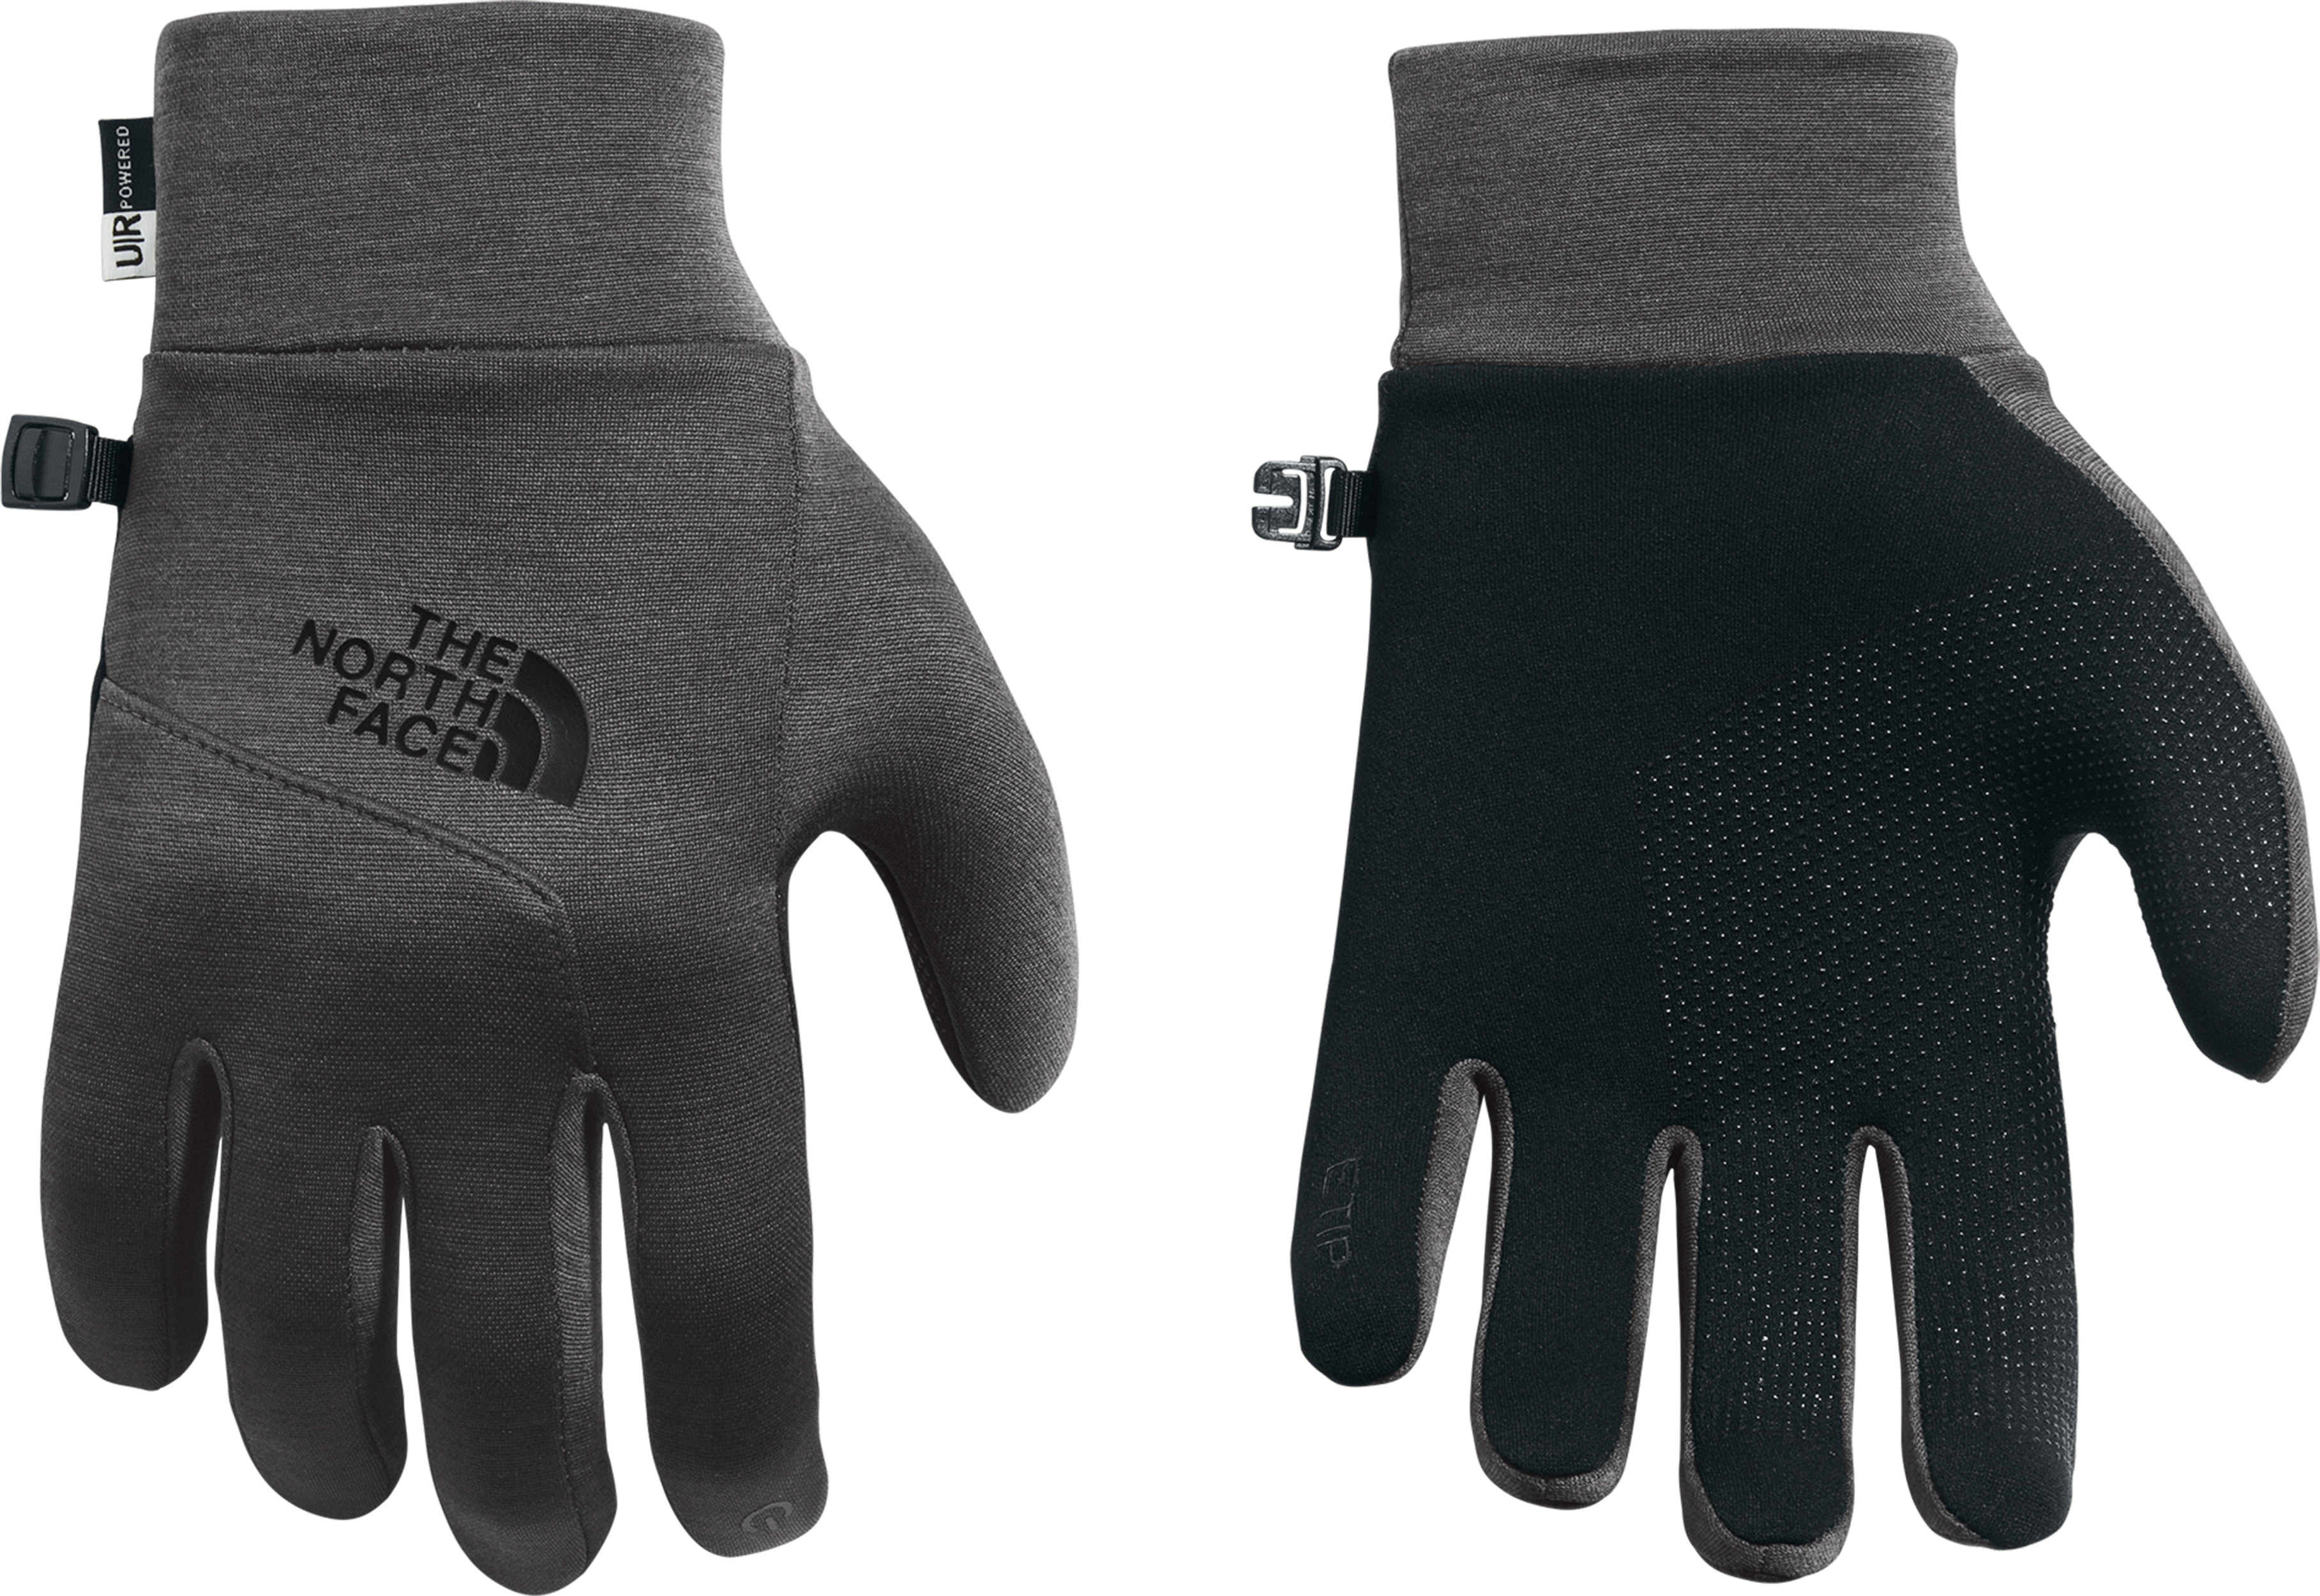 b66c8a49c The North Face Etip Gloves - Unisex